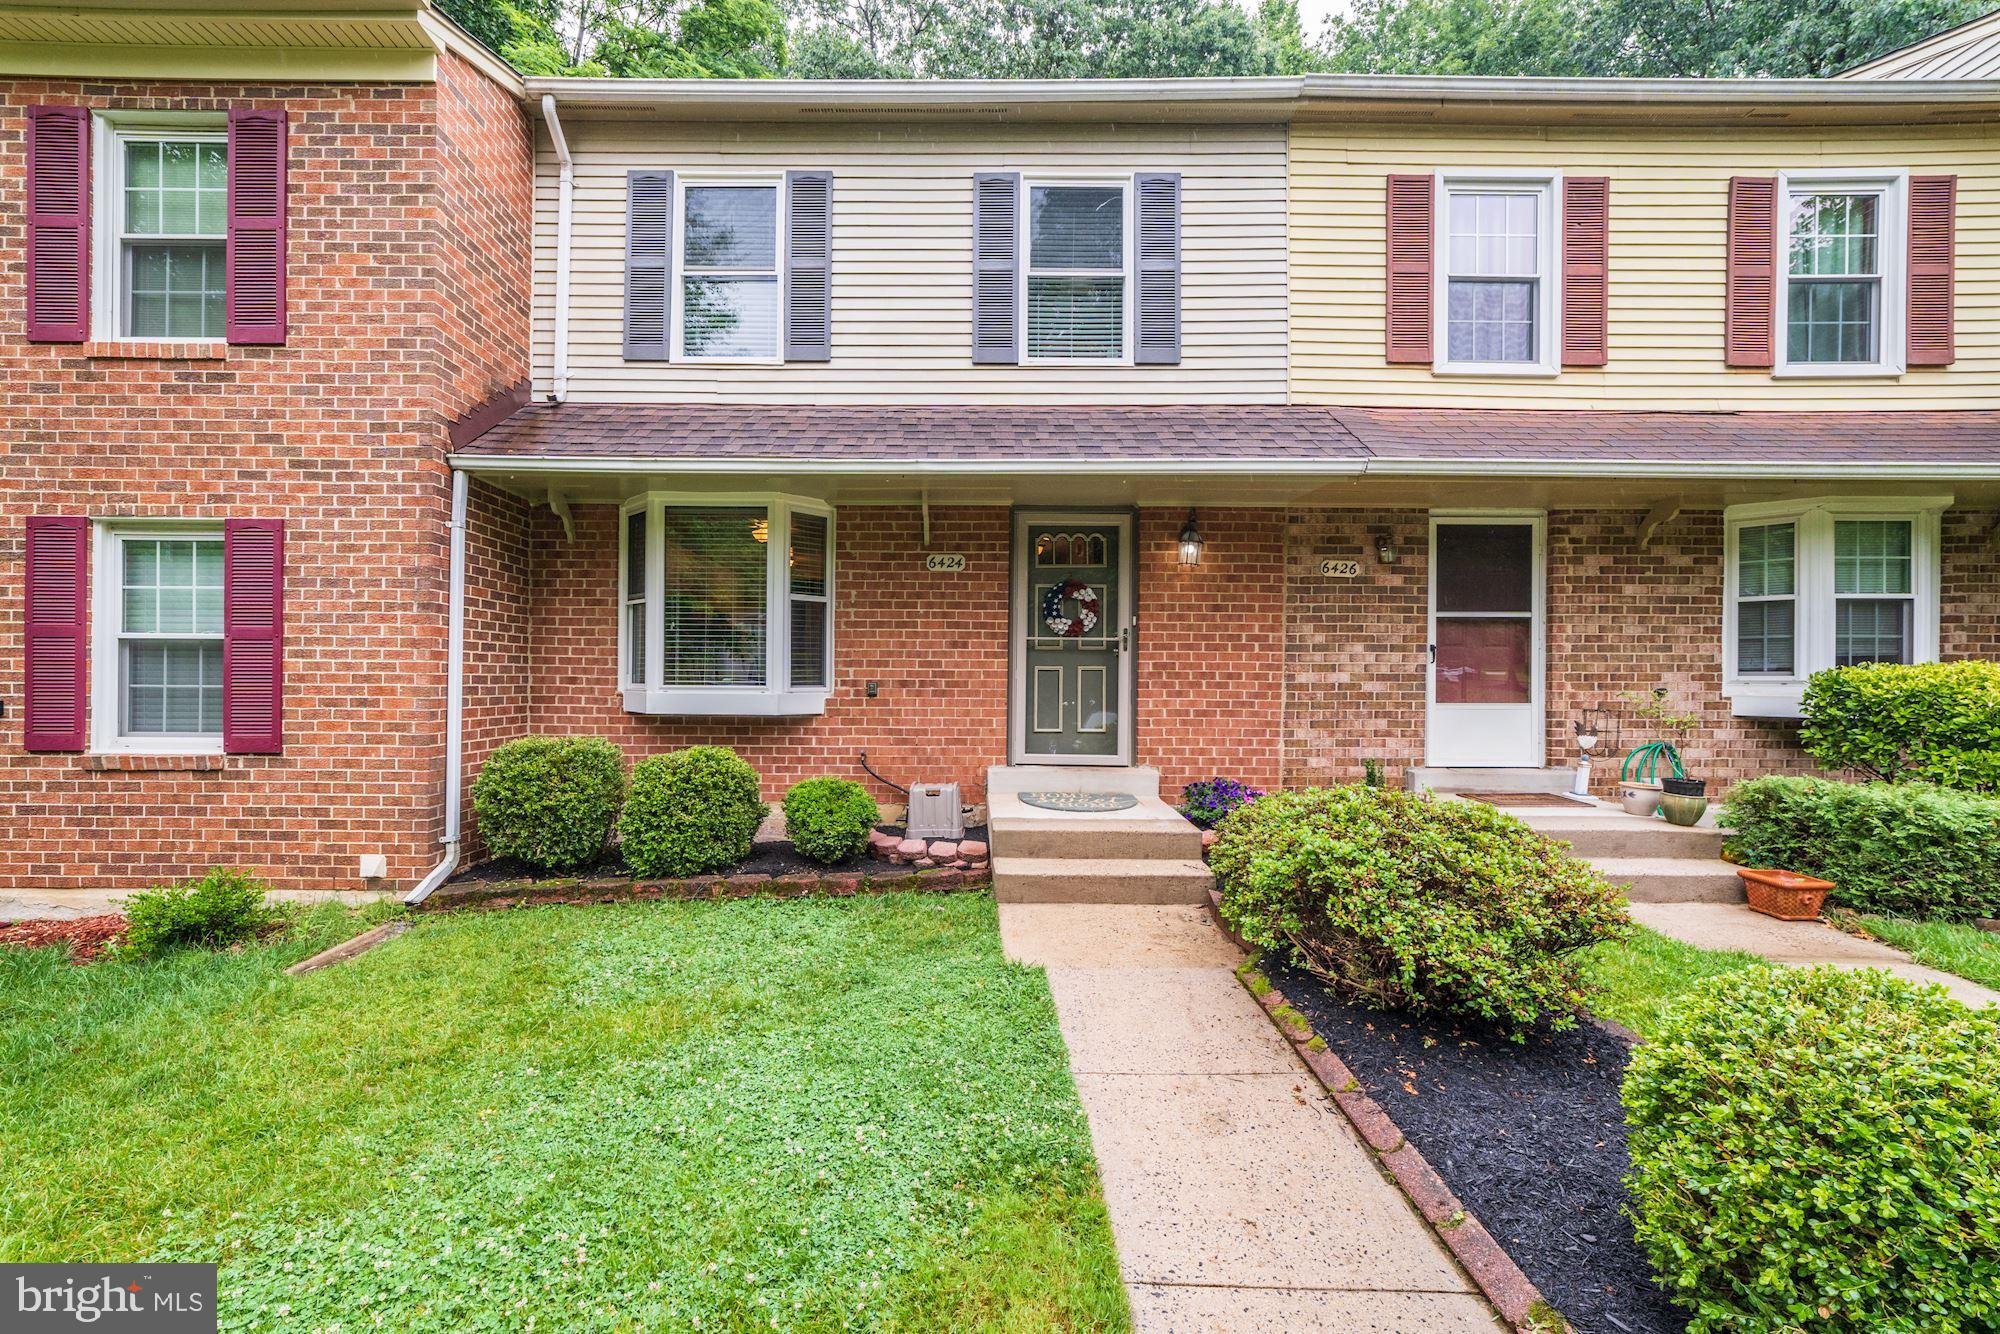 MOVE RIGHT INTO THIS FABULOUSLY SPACIOUS & LIGHT FILLED  3 BR, 2.5 3 LEVEL TOWNHOME IN SOUGHT AFTER SHANNON STATION & WEST SPRINGFIELD HIGH SCHOOL.   PREMIUM LOT BACKS TO PARKLANDS & COMMON SPACE - EXTEND YOUR PARTY SPACE BEYOND THE FENCE LINE!  AMPLE PARKING TO INCLUDE 2 ASSIGNED & MANY VISITOR SPOTS.  4 POOL PASSES CONVEY SO ENJOY SUMMERTIME FUN!  BRAND NEW ROOF, NEWER WINDOWS AND SIDING,  FULLY UPDATED EAT-IN KITCHEN BOASTS GRANITE, CHIC BACKSPLASH & NEWER APPLIANCES.  HARDWOODS ON MAIN & NEW CARPET UPPER & LOWER.  SPACIOUS MASTER WITH UPDATED BATH PLUS 2 ADDITIONAL UPPER BR SERVICED BY HALL BATH.  WALK OUT LOWER LEVEL OFFERS GREAT SPACE TO WORK OR PLAY WITH ACCESS TO PRIVATE REAR BRICKED PATIO -  PERFECT FOR WARM WEATHER BBQ'S & DINING. FABULOUS COMMUNITY AMENITIES TO INCLUDE POOL, TOT LOTS, TENNIS & COMMUNITY GARDEN! EASY COMMUTE TO FT BELVOIR, PENTAGON & MORE! NOTHING LEFT TO DO BUT MOVE IN!